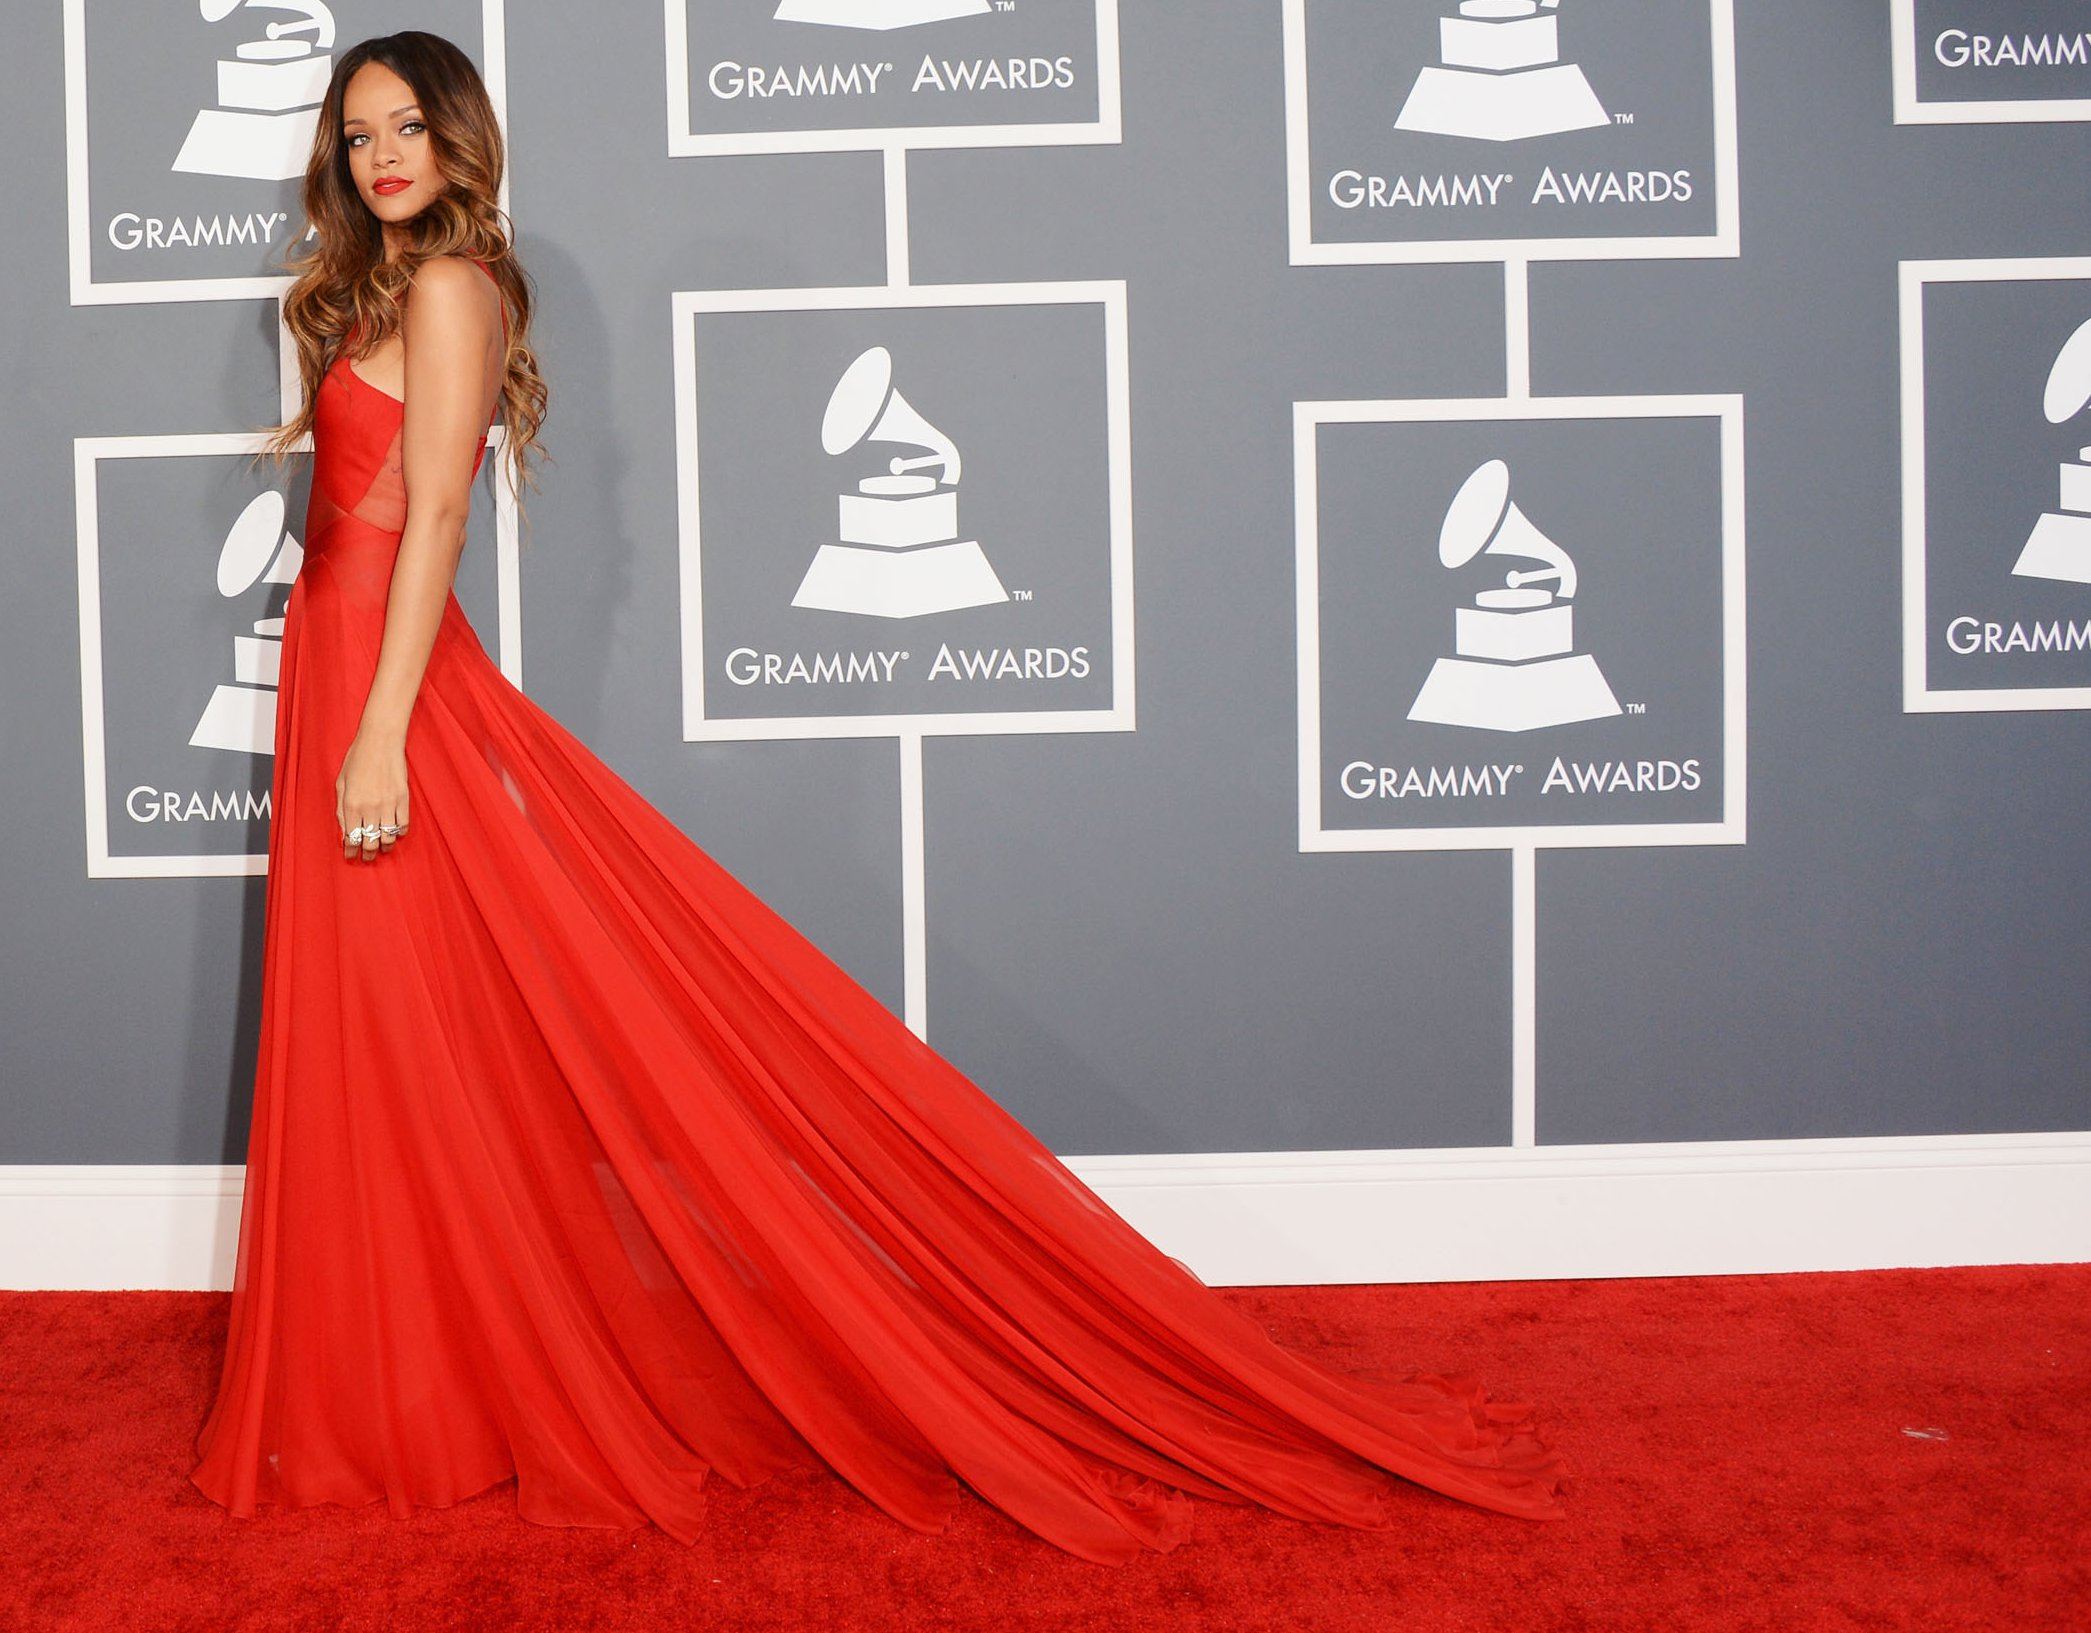 Rihanna-red dress-2013